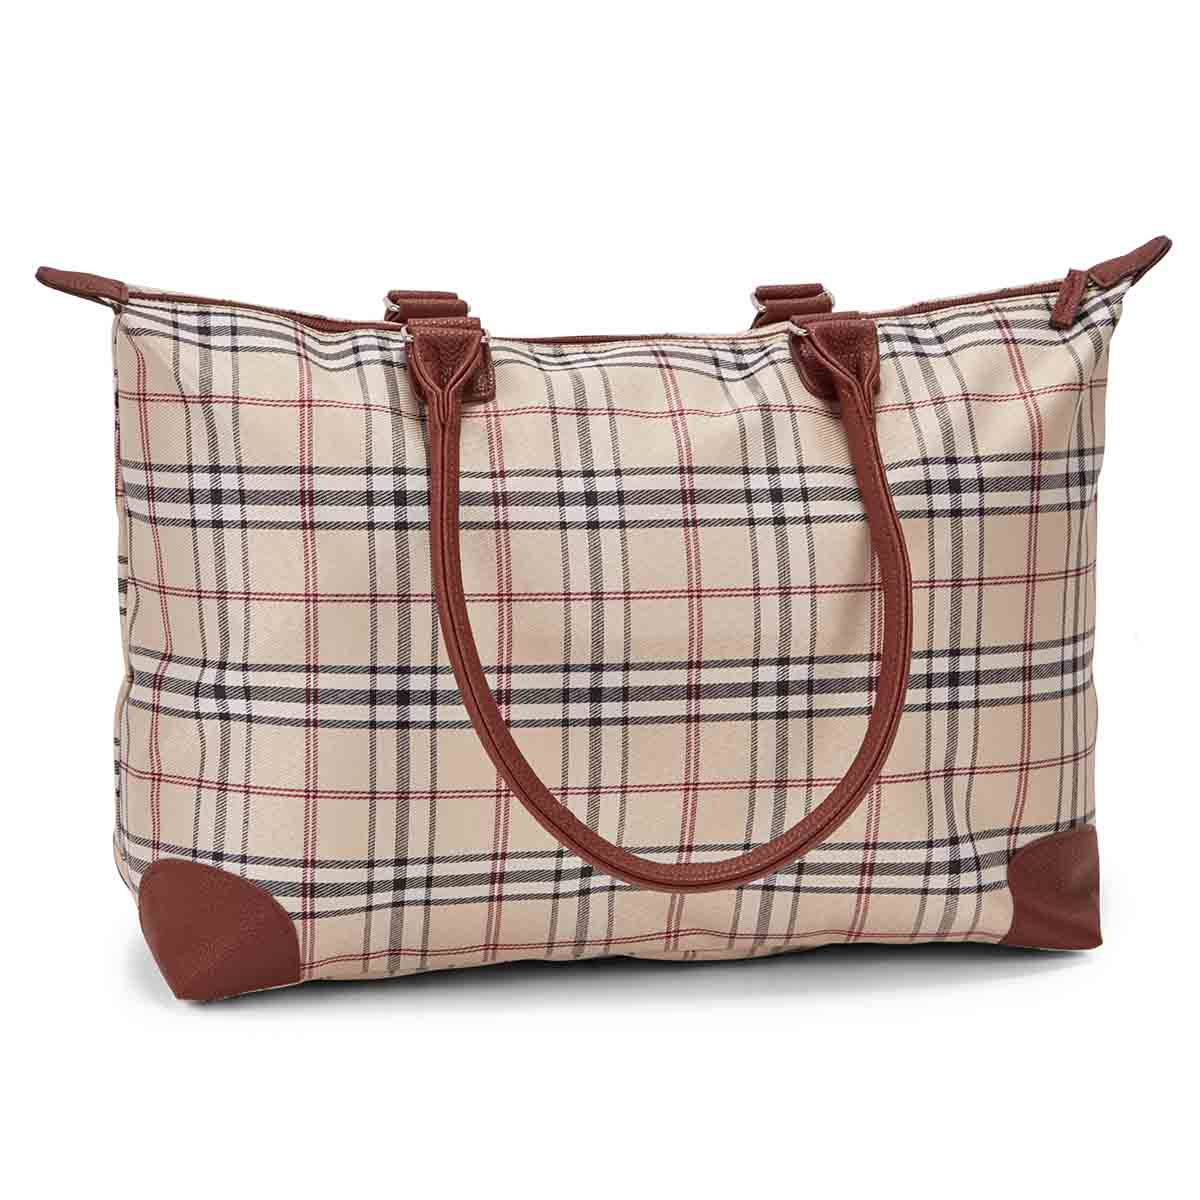 Women's sand PLAID large tote